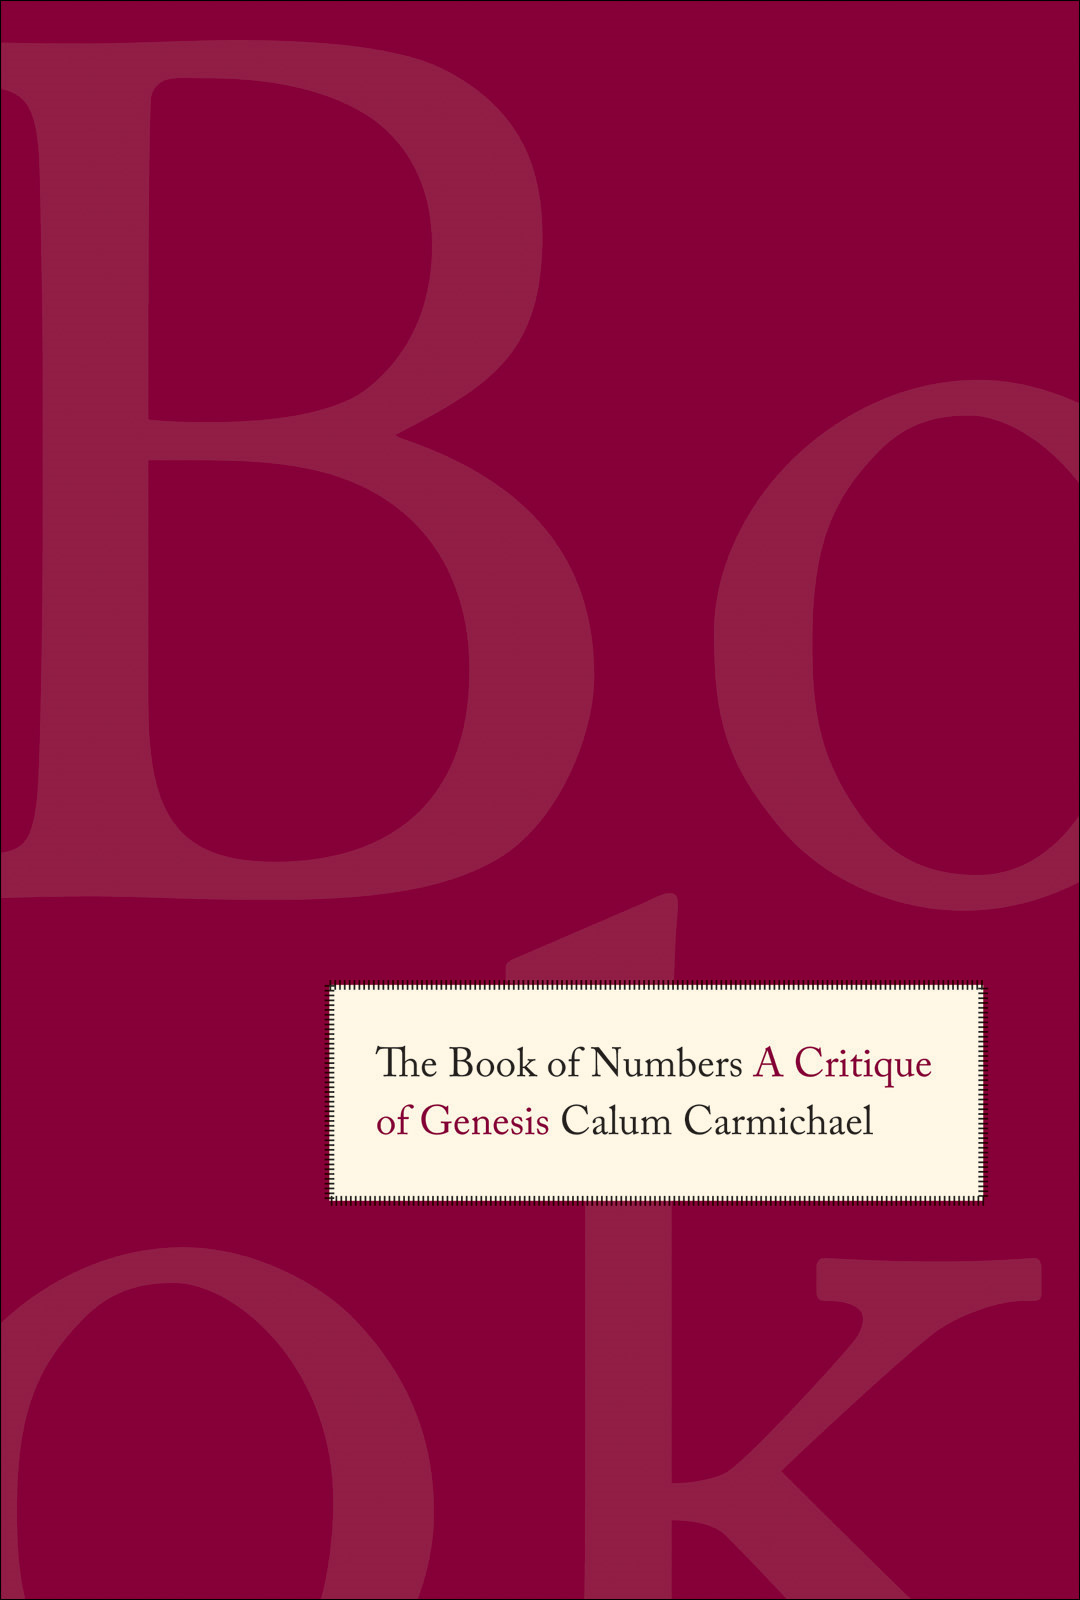 The Book of Numbers: A Critique of Genesis